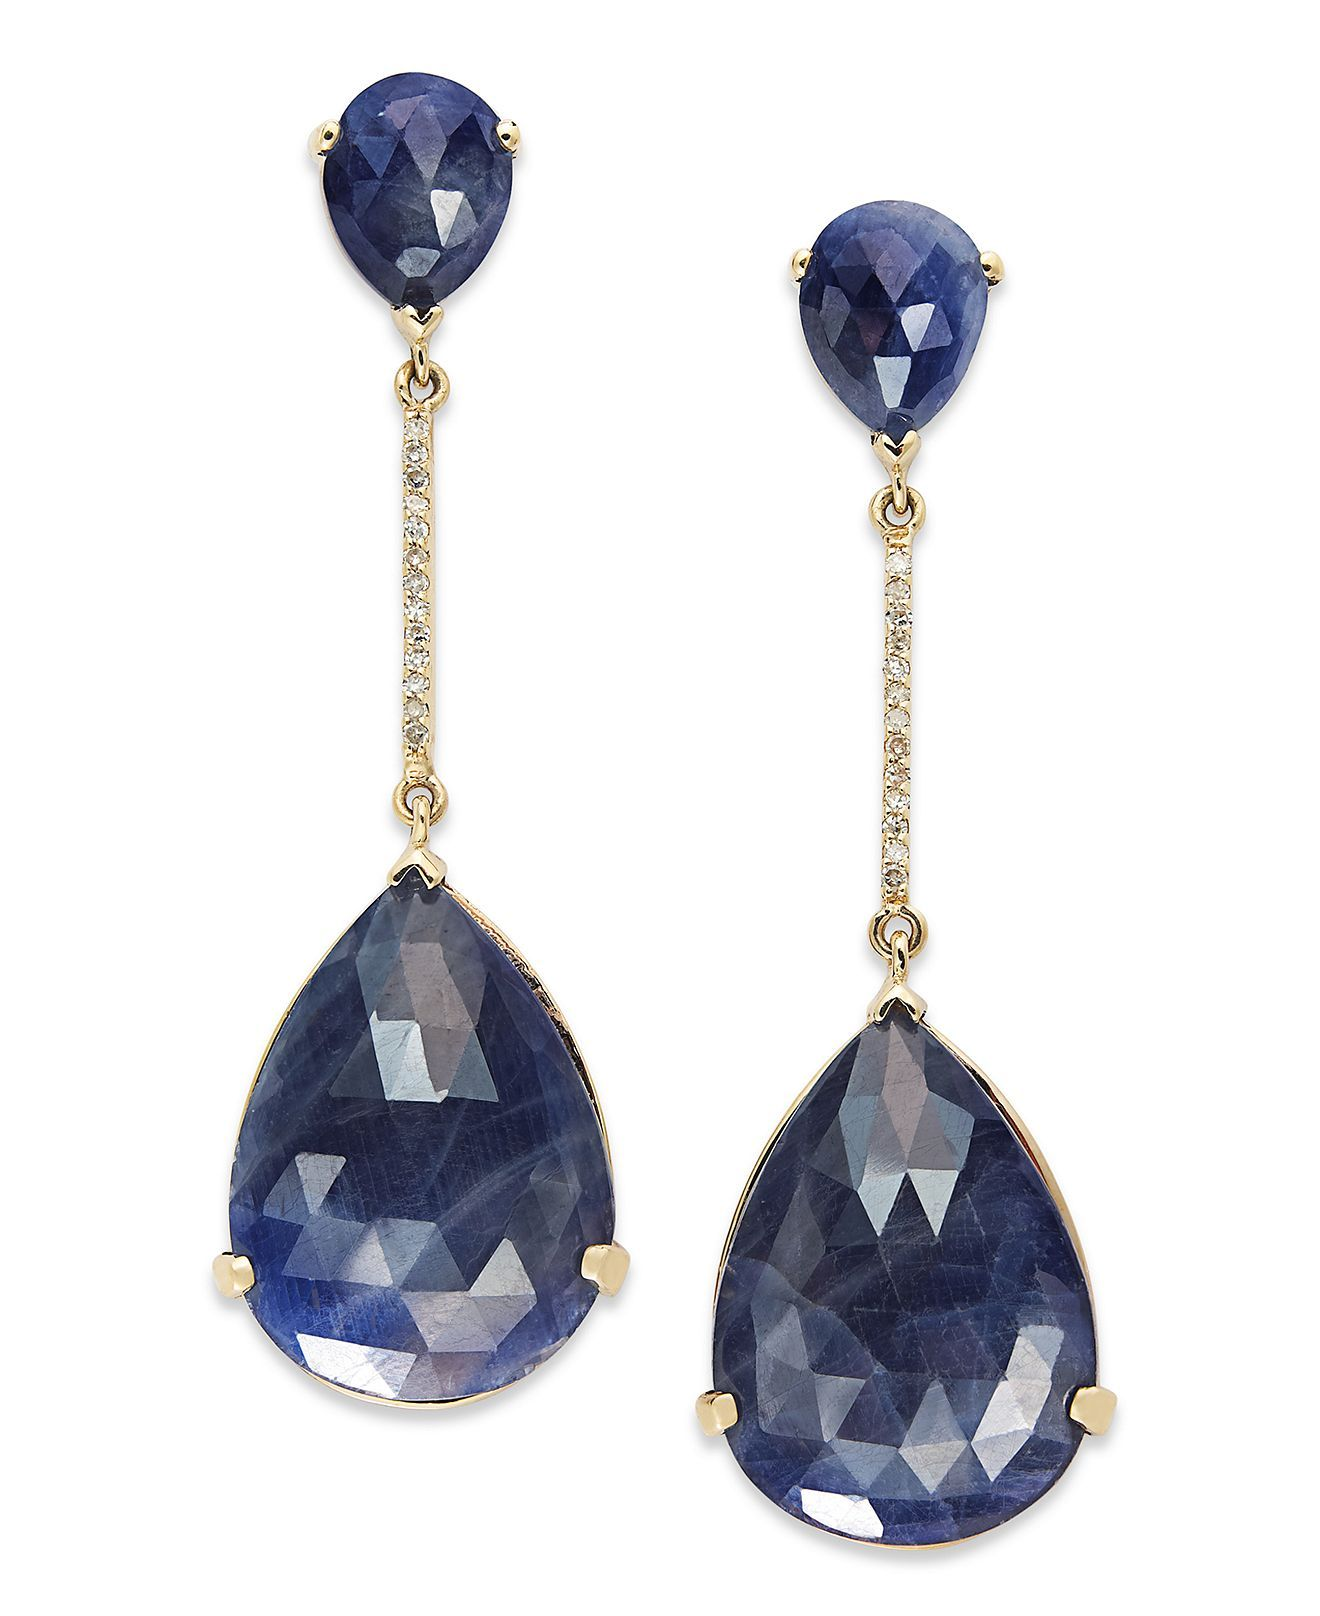 0c0013619 EFFY Collection 14k Gold Earrings, Sapphire (20 ct. t.w.) and Diamond (1/10  ct. t.w.) Pear Drop Earrings - All Effy Jewelry - Jewelry & Watches - Macy's